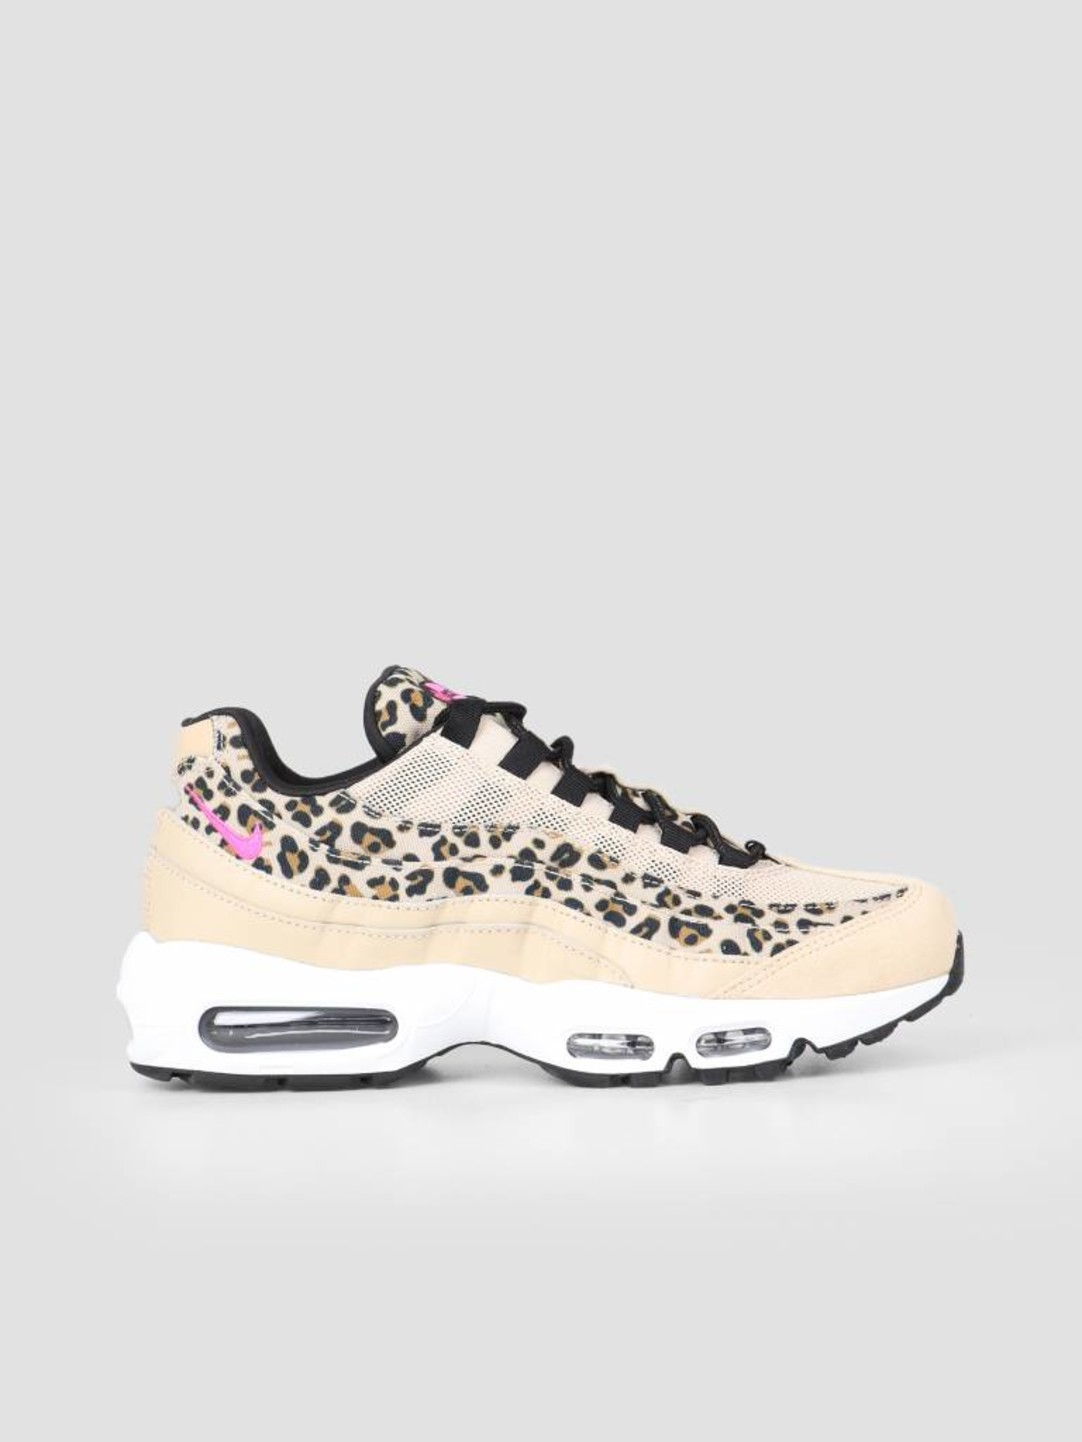 6657e38a Nike Nike Air Max 95 Prm Desert Ore Laser Fuchsia Black Wheat Cd0180-200